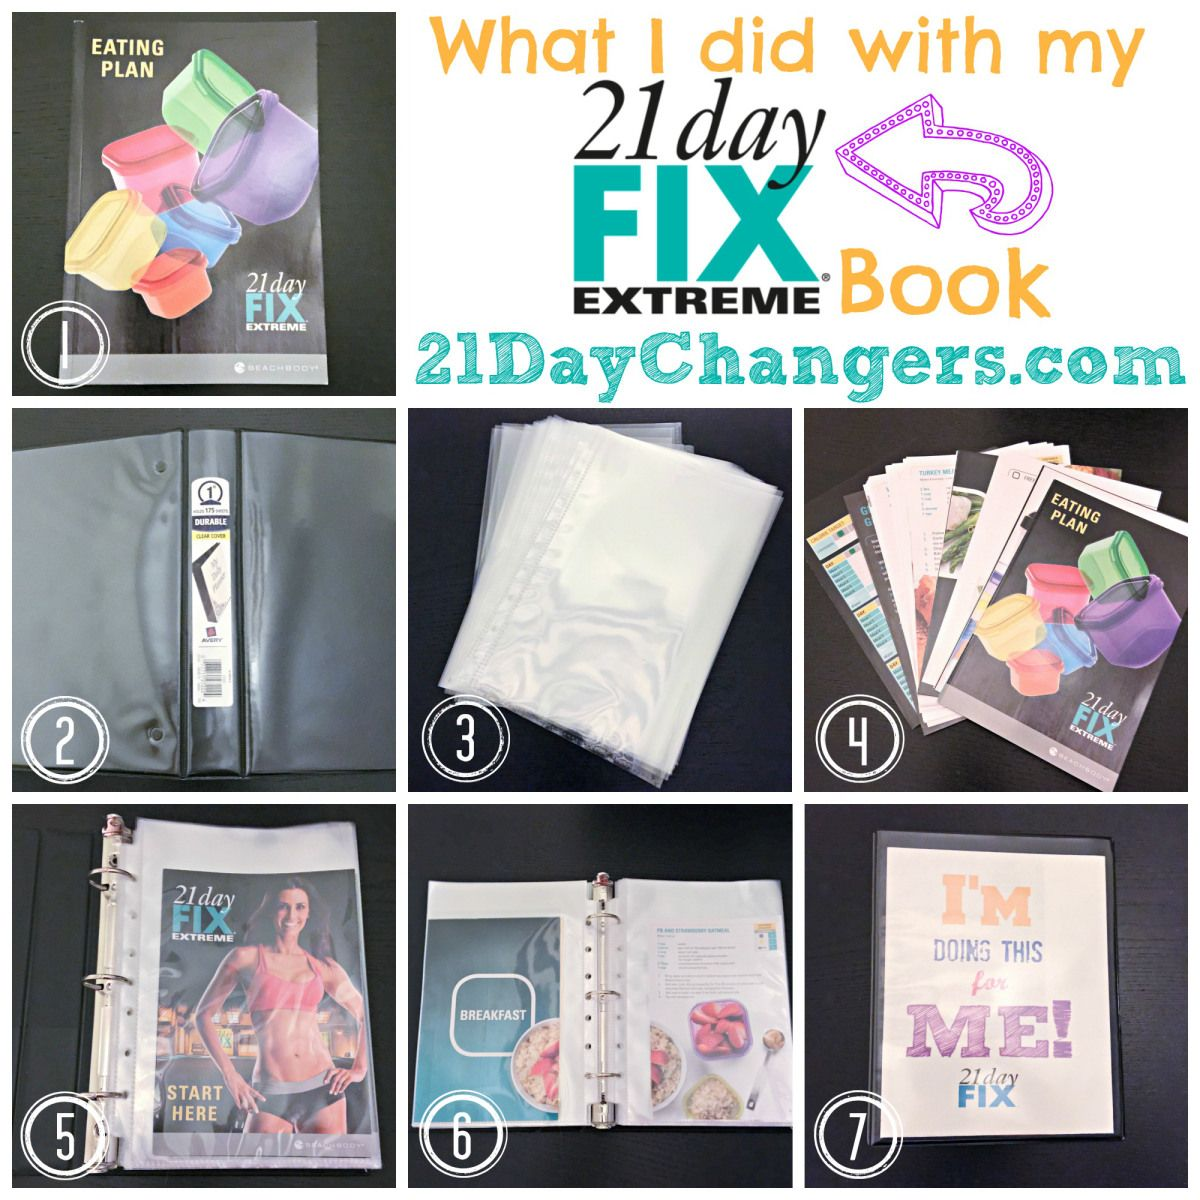 Hello Changers! I Wanted To Share What I Did With My 21